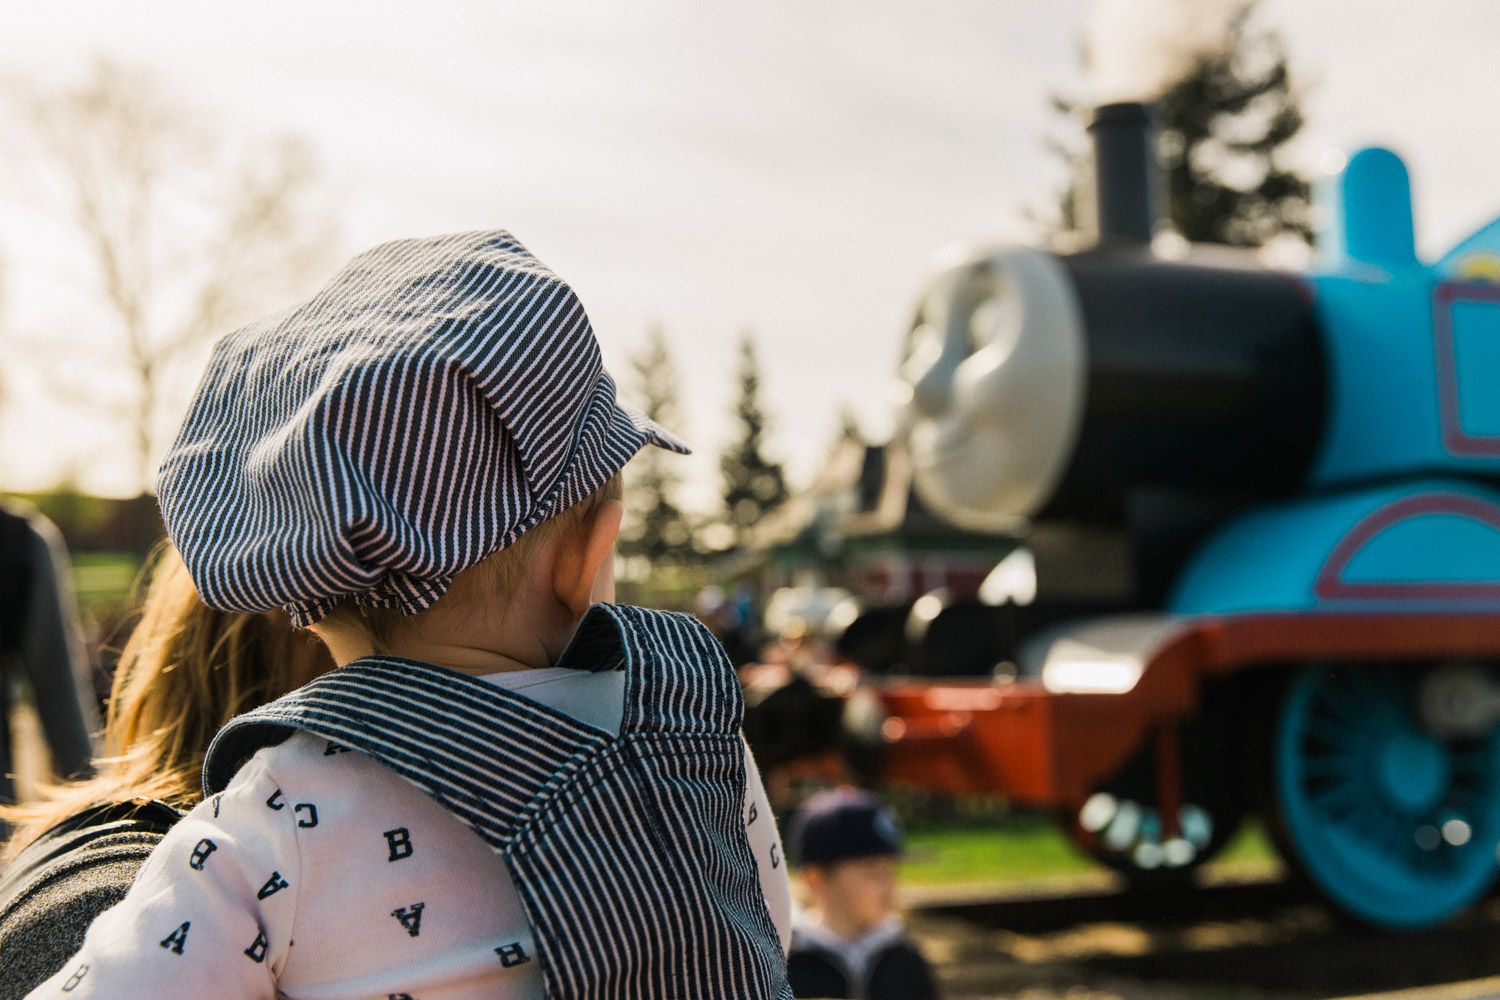 Day out with thomas, heritage park, calgary, Guenard photography, family activity